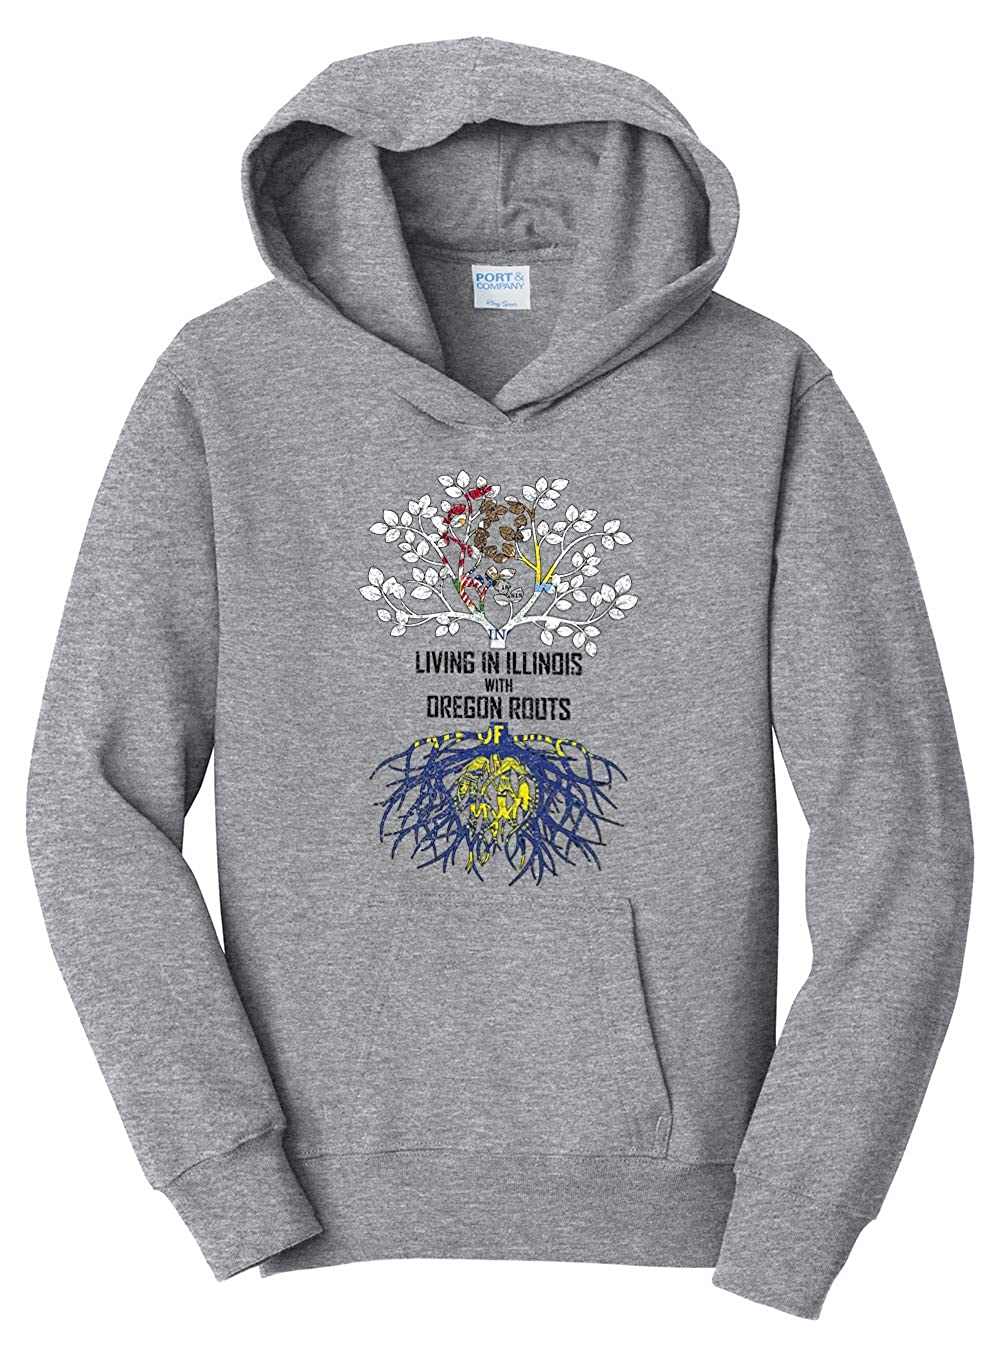 Tenacitee Girls Living in Illinois with Oregon Roots Hooded Sweatshirt